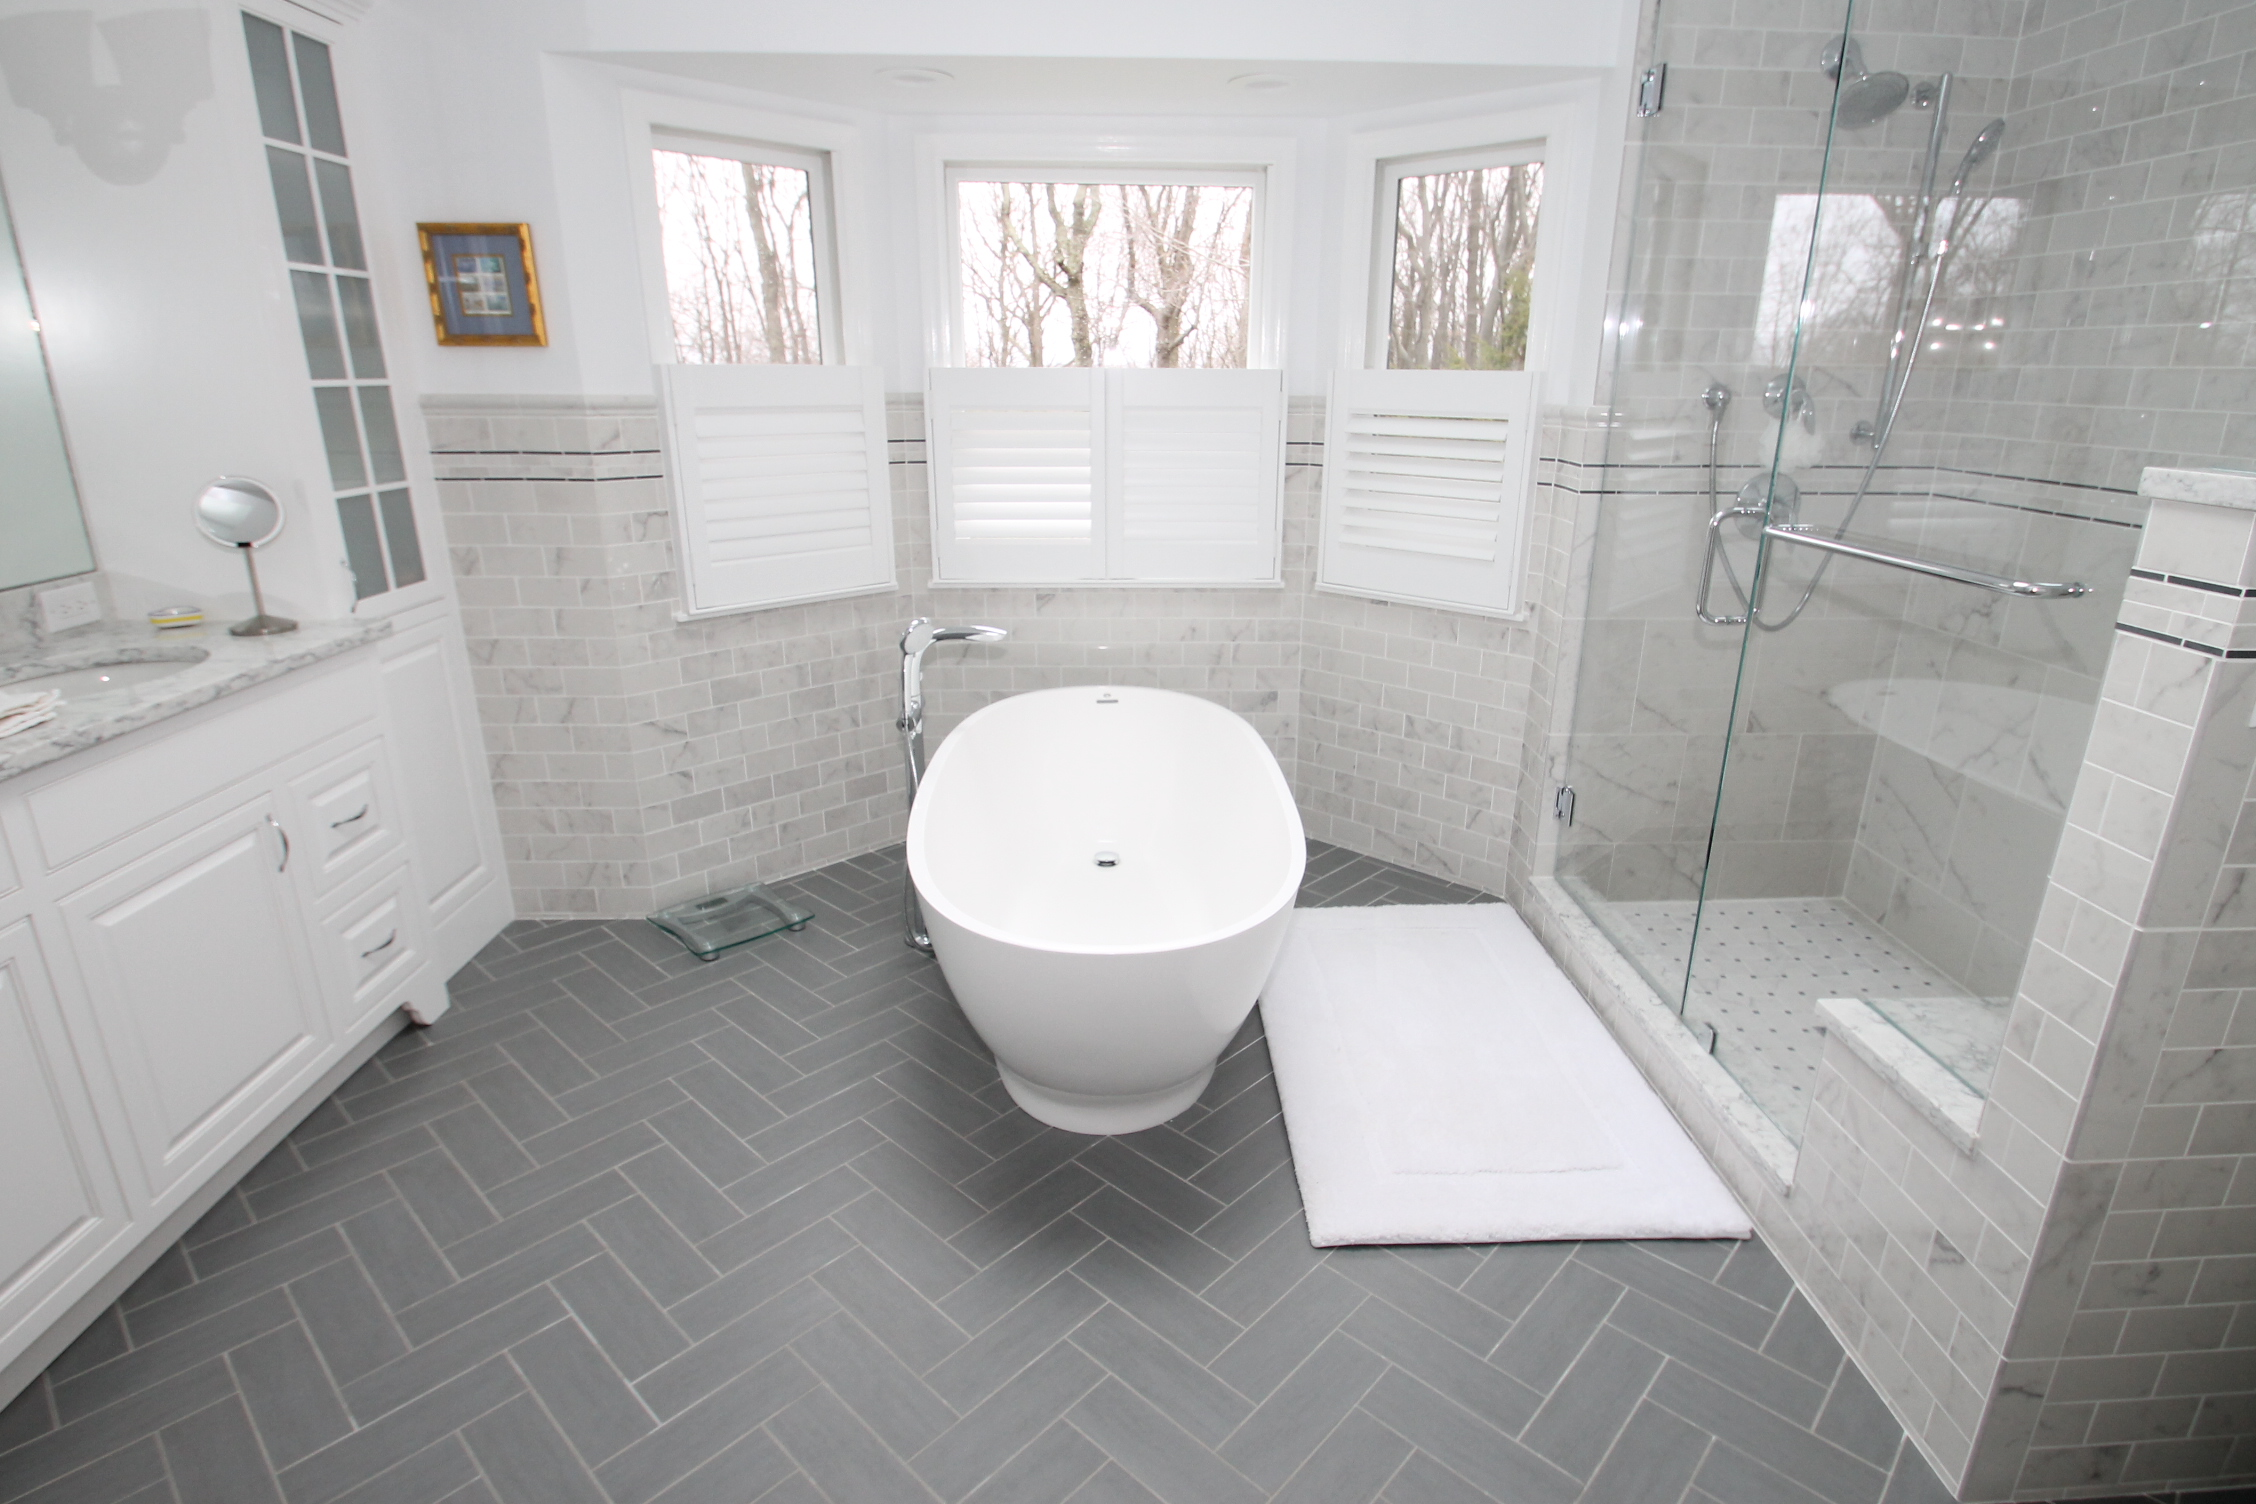 Bathroom remodeling nj bathroom design new jersey bath - How to layout a bathroom remodel ...